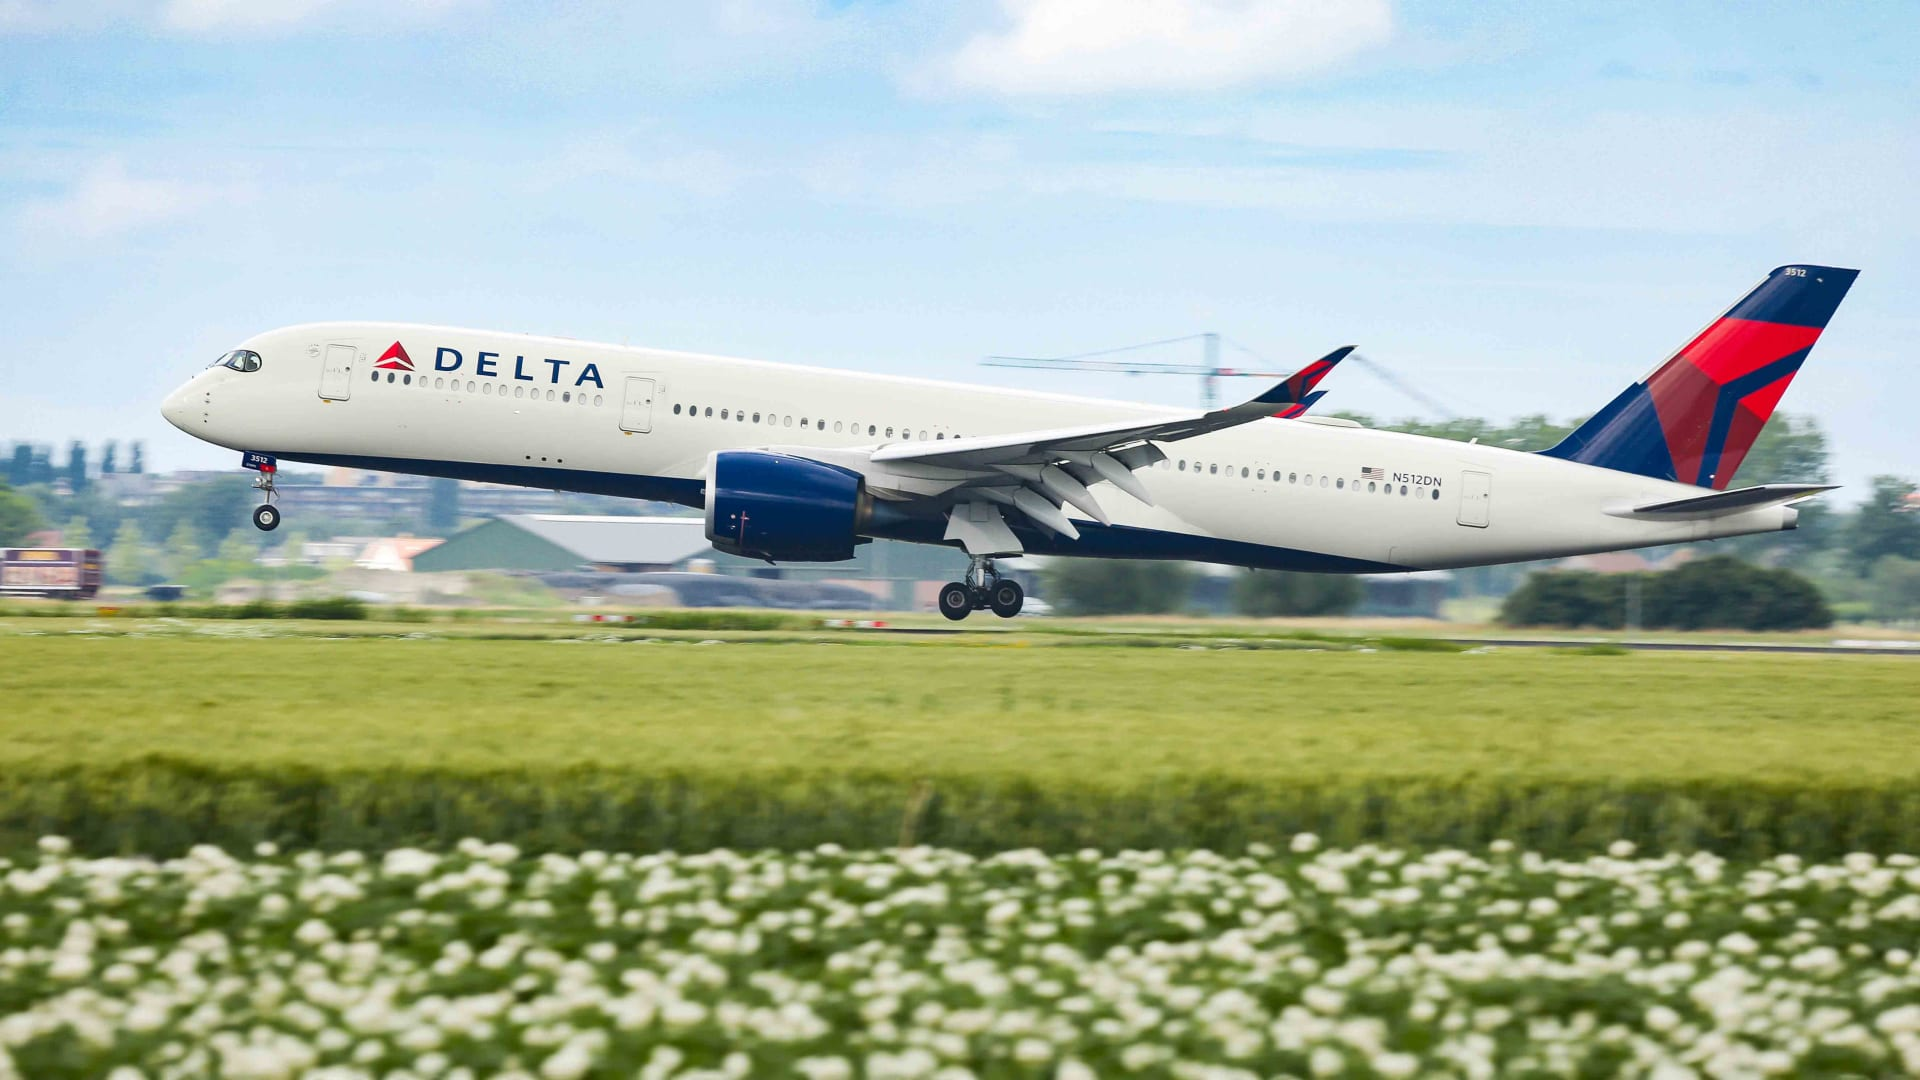 Delta Air Lines Just Made a Bold New Decision. Here's Why It's So Controversial